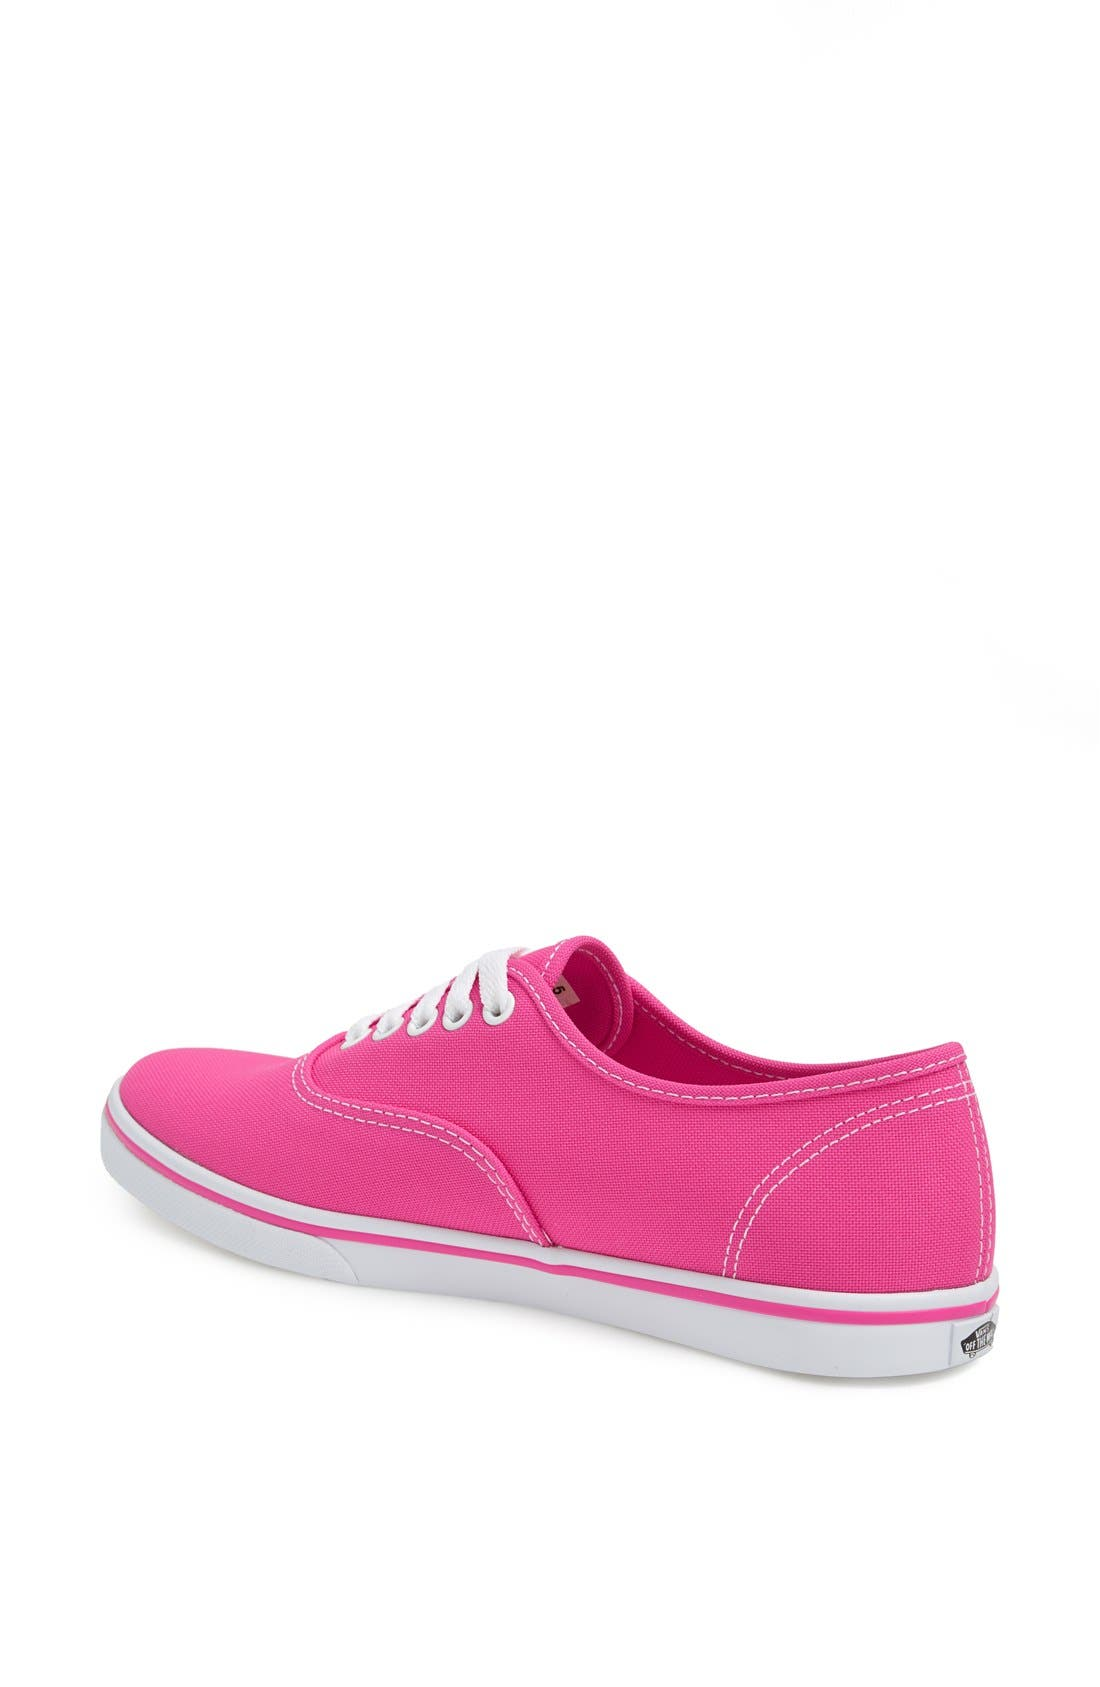 Alternate Image 2  - Vans 'Authentic - Lo Pro' Sneaker (Women)